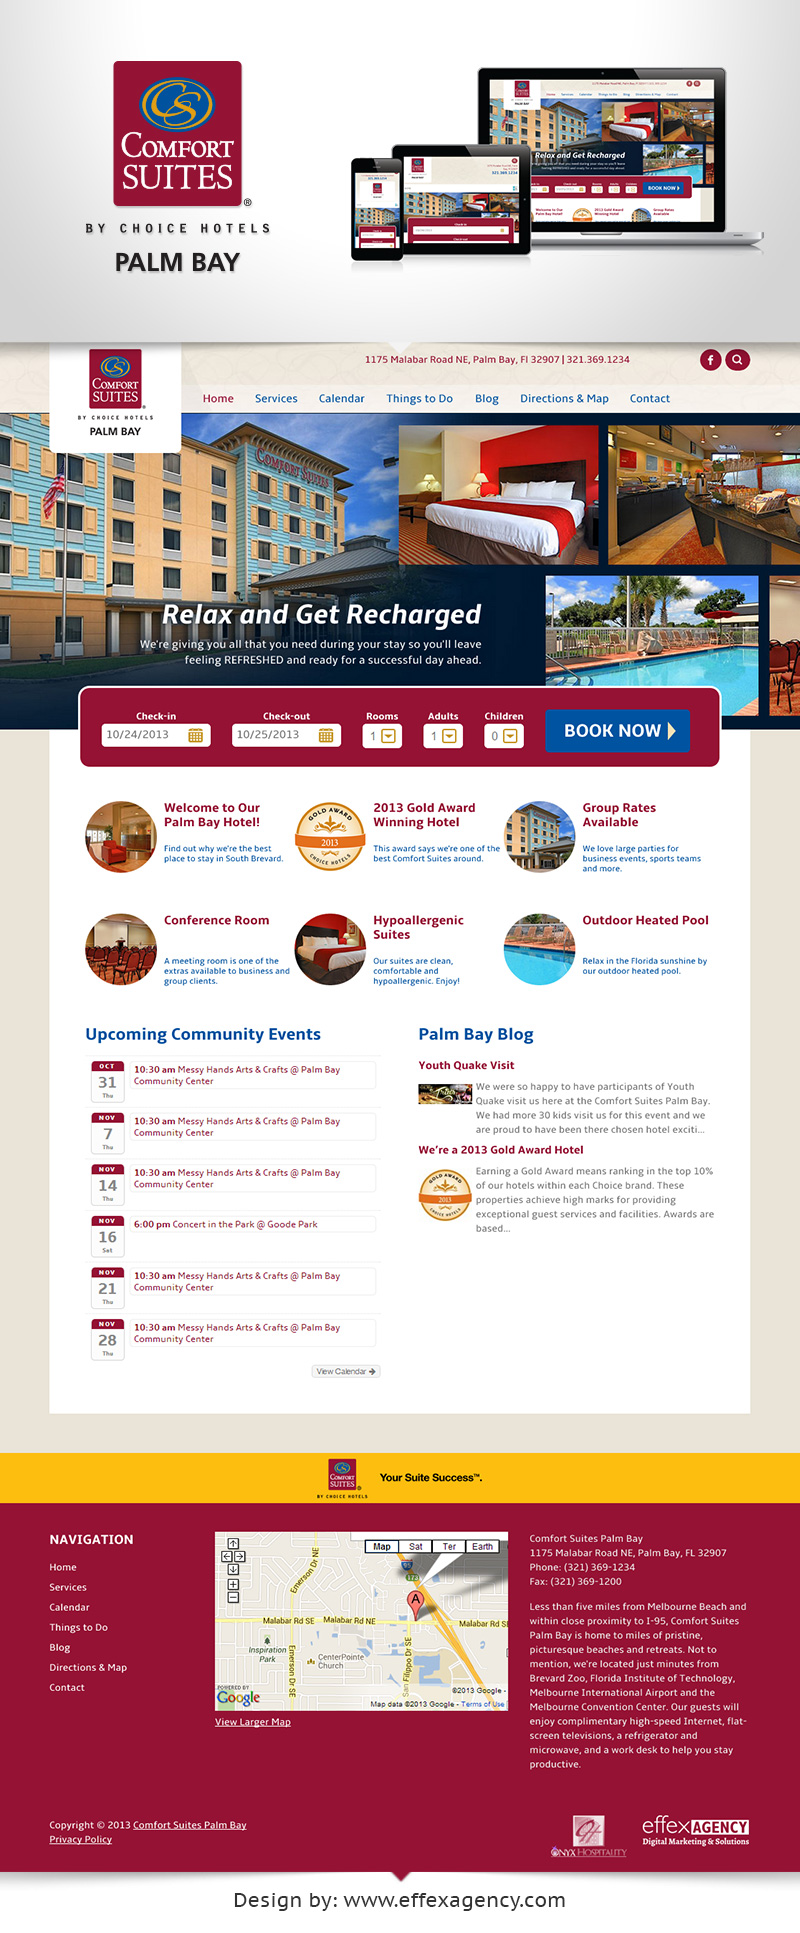 Mobile responsive website design for Comfort Suites Palm Bay